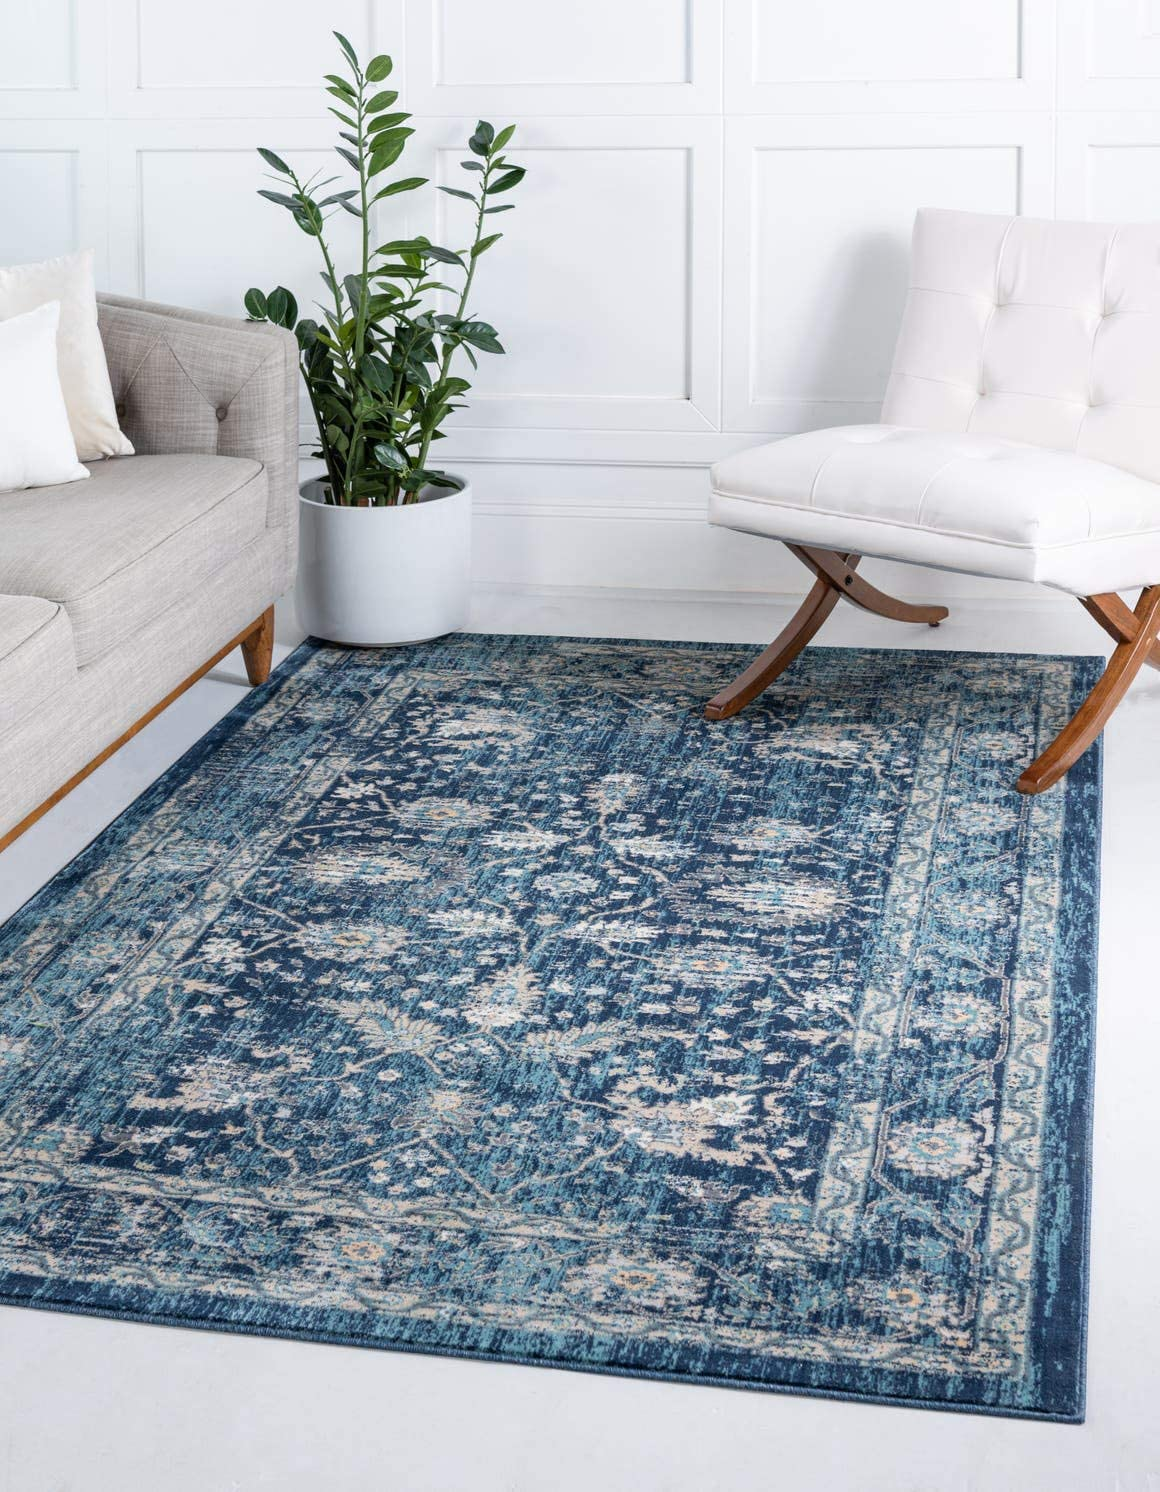 Unique Loom Oslo Collection Traditional Botanical Navy Blue Area Rug 10 x 13